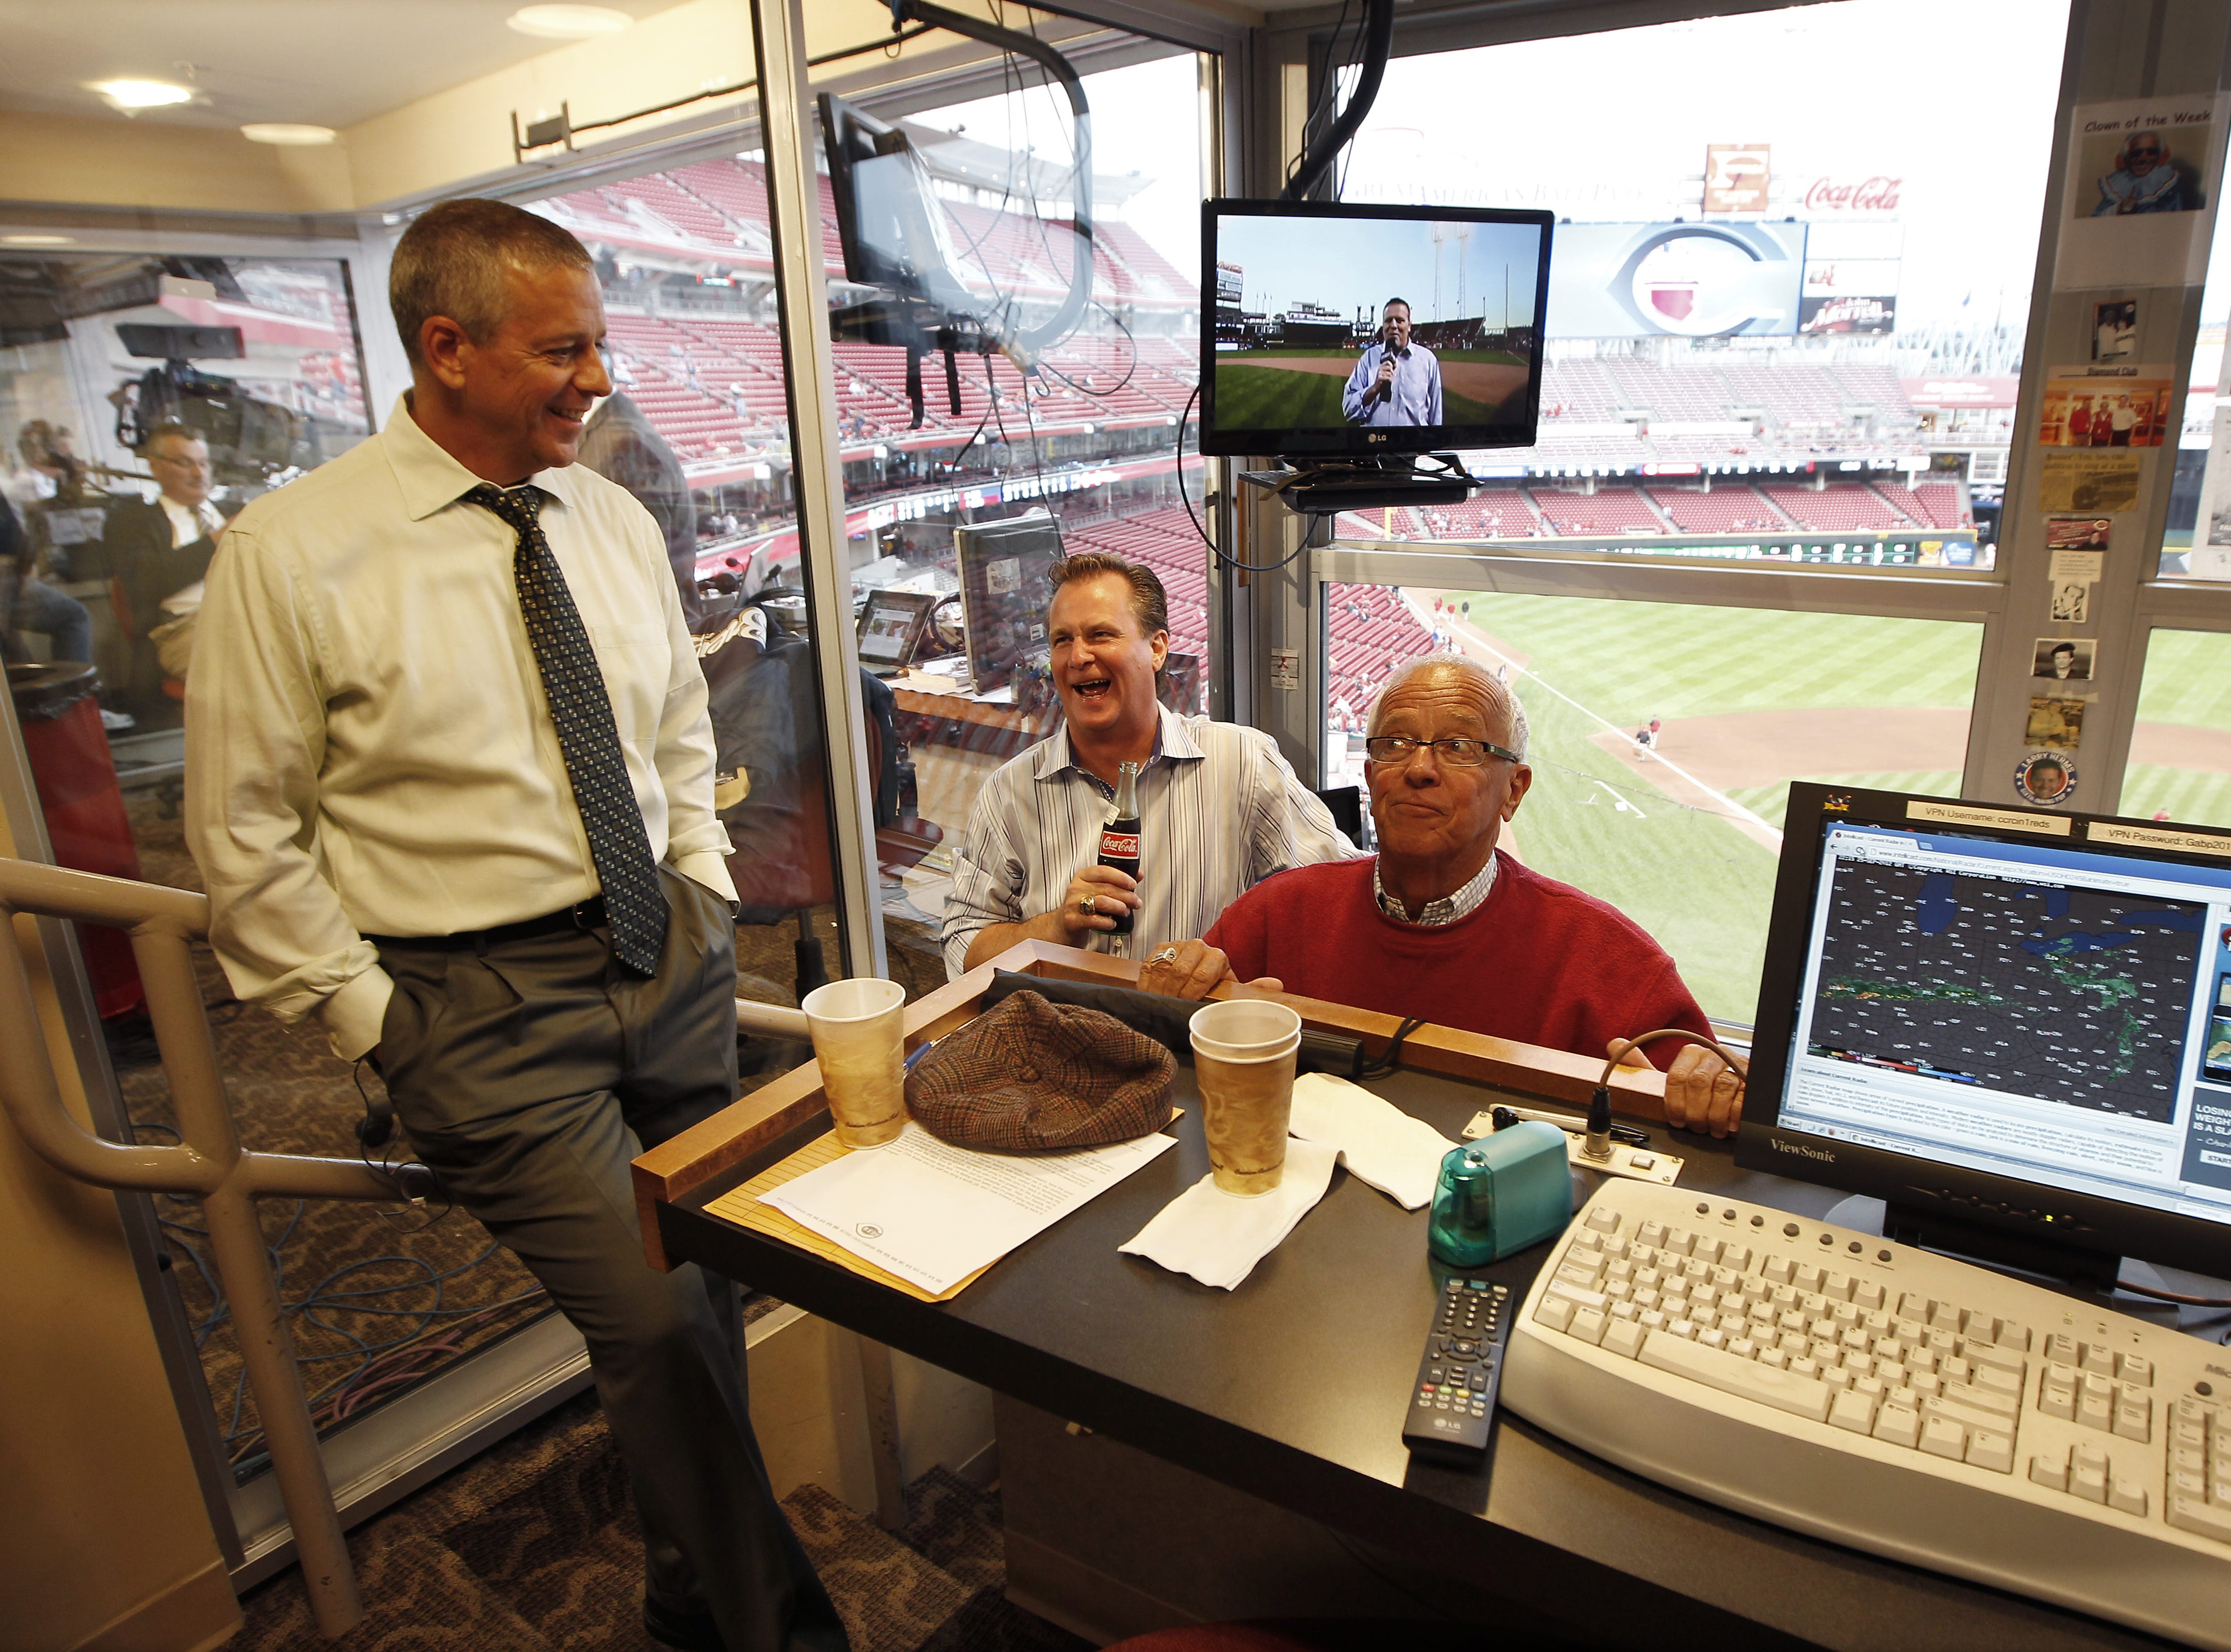 Tuesday, Sept. 25, 2012 REDS SPORTS  : The Cincinnati Reds radio broadcasteing team Thom Brennaman, left Jeff Brantley and Marty Brennaman joke around while in the radio booth prior to the Reds game against the Milwaukee Brewers at Great American Ball Park.